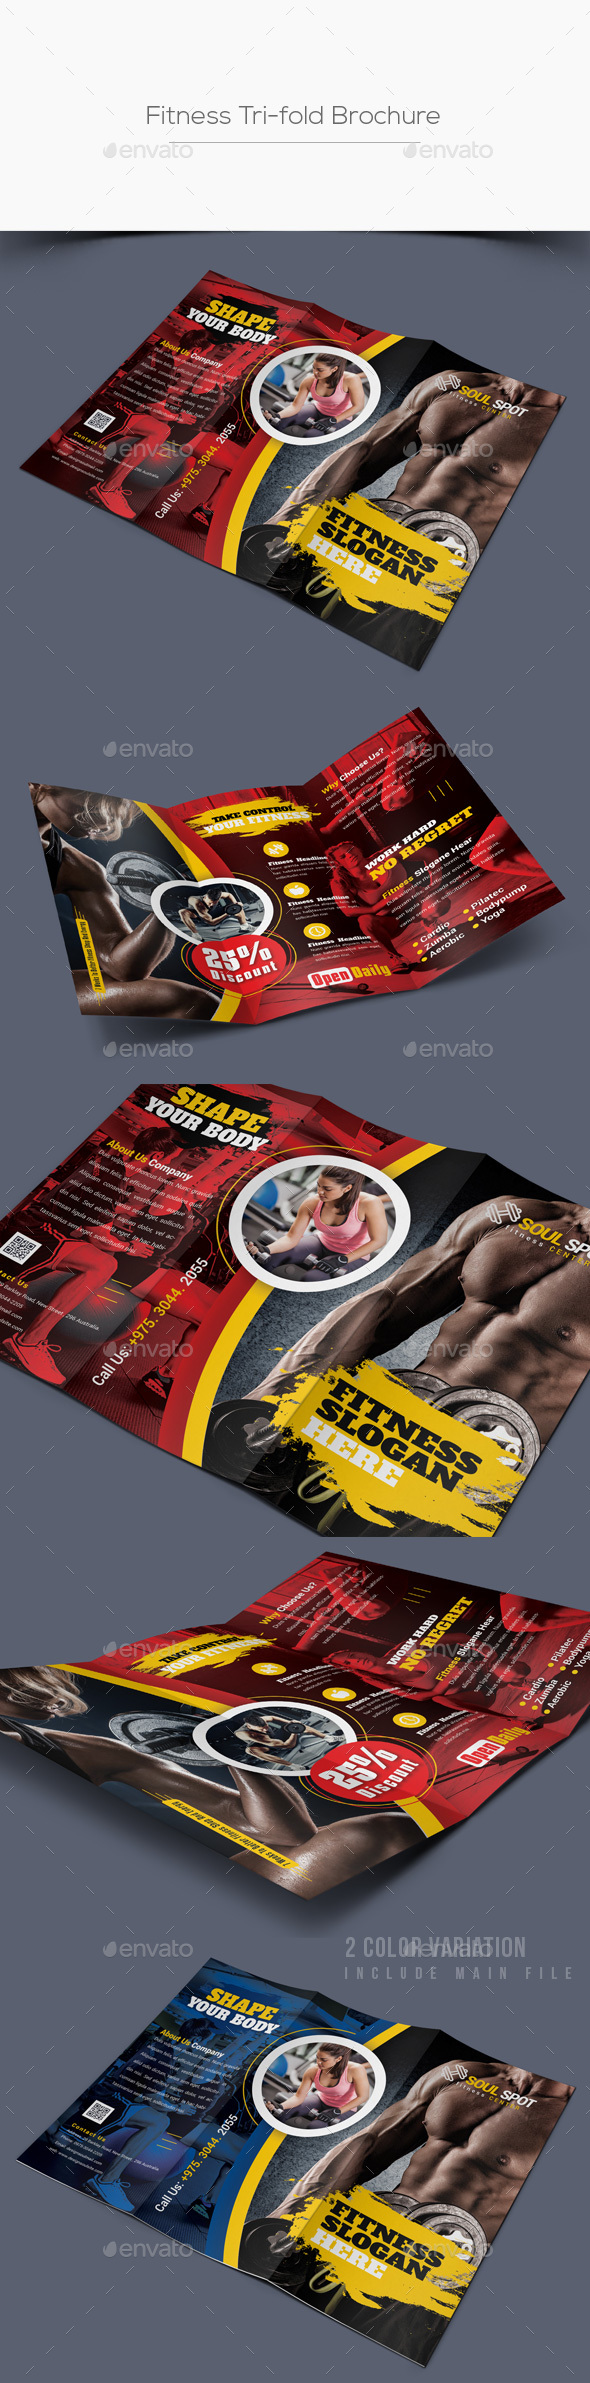 Fitness Tri-fold Brochure - Corporate Brochures